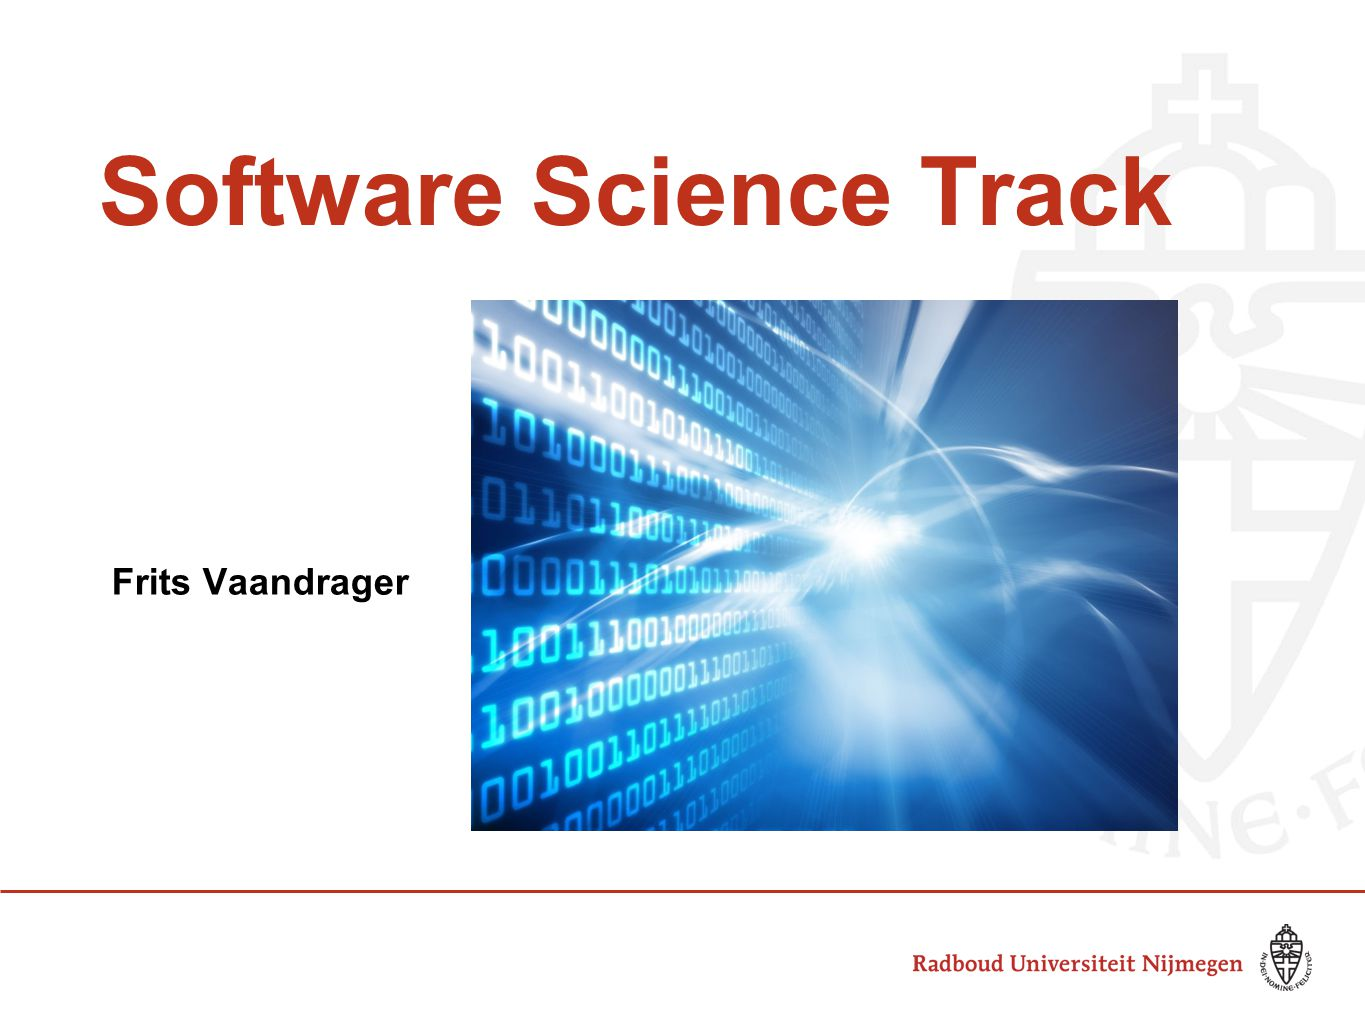 Software Science Track Frits Vaandrager